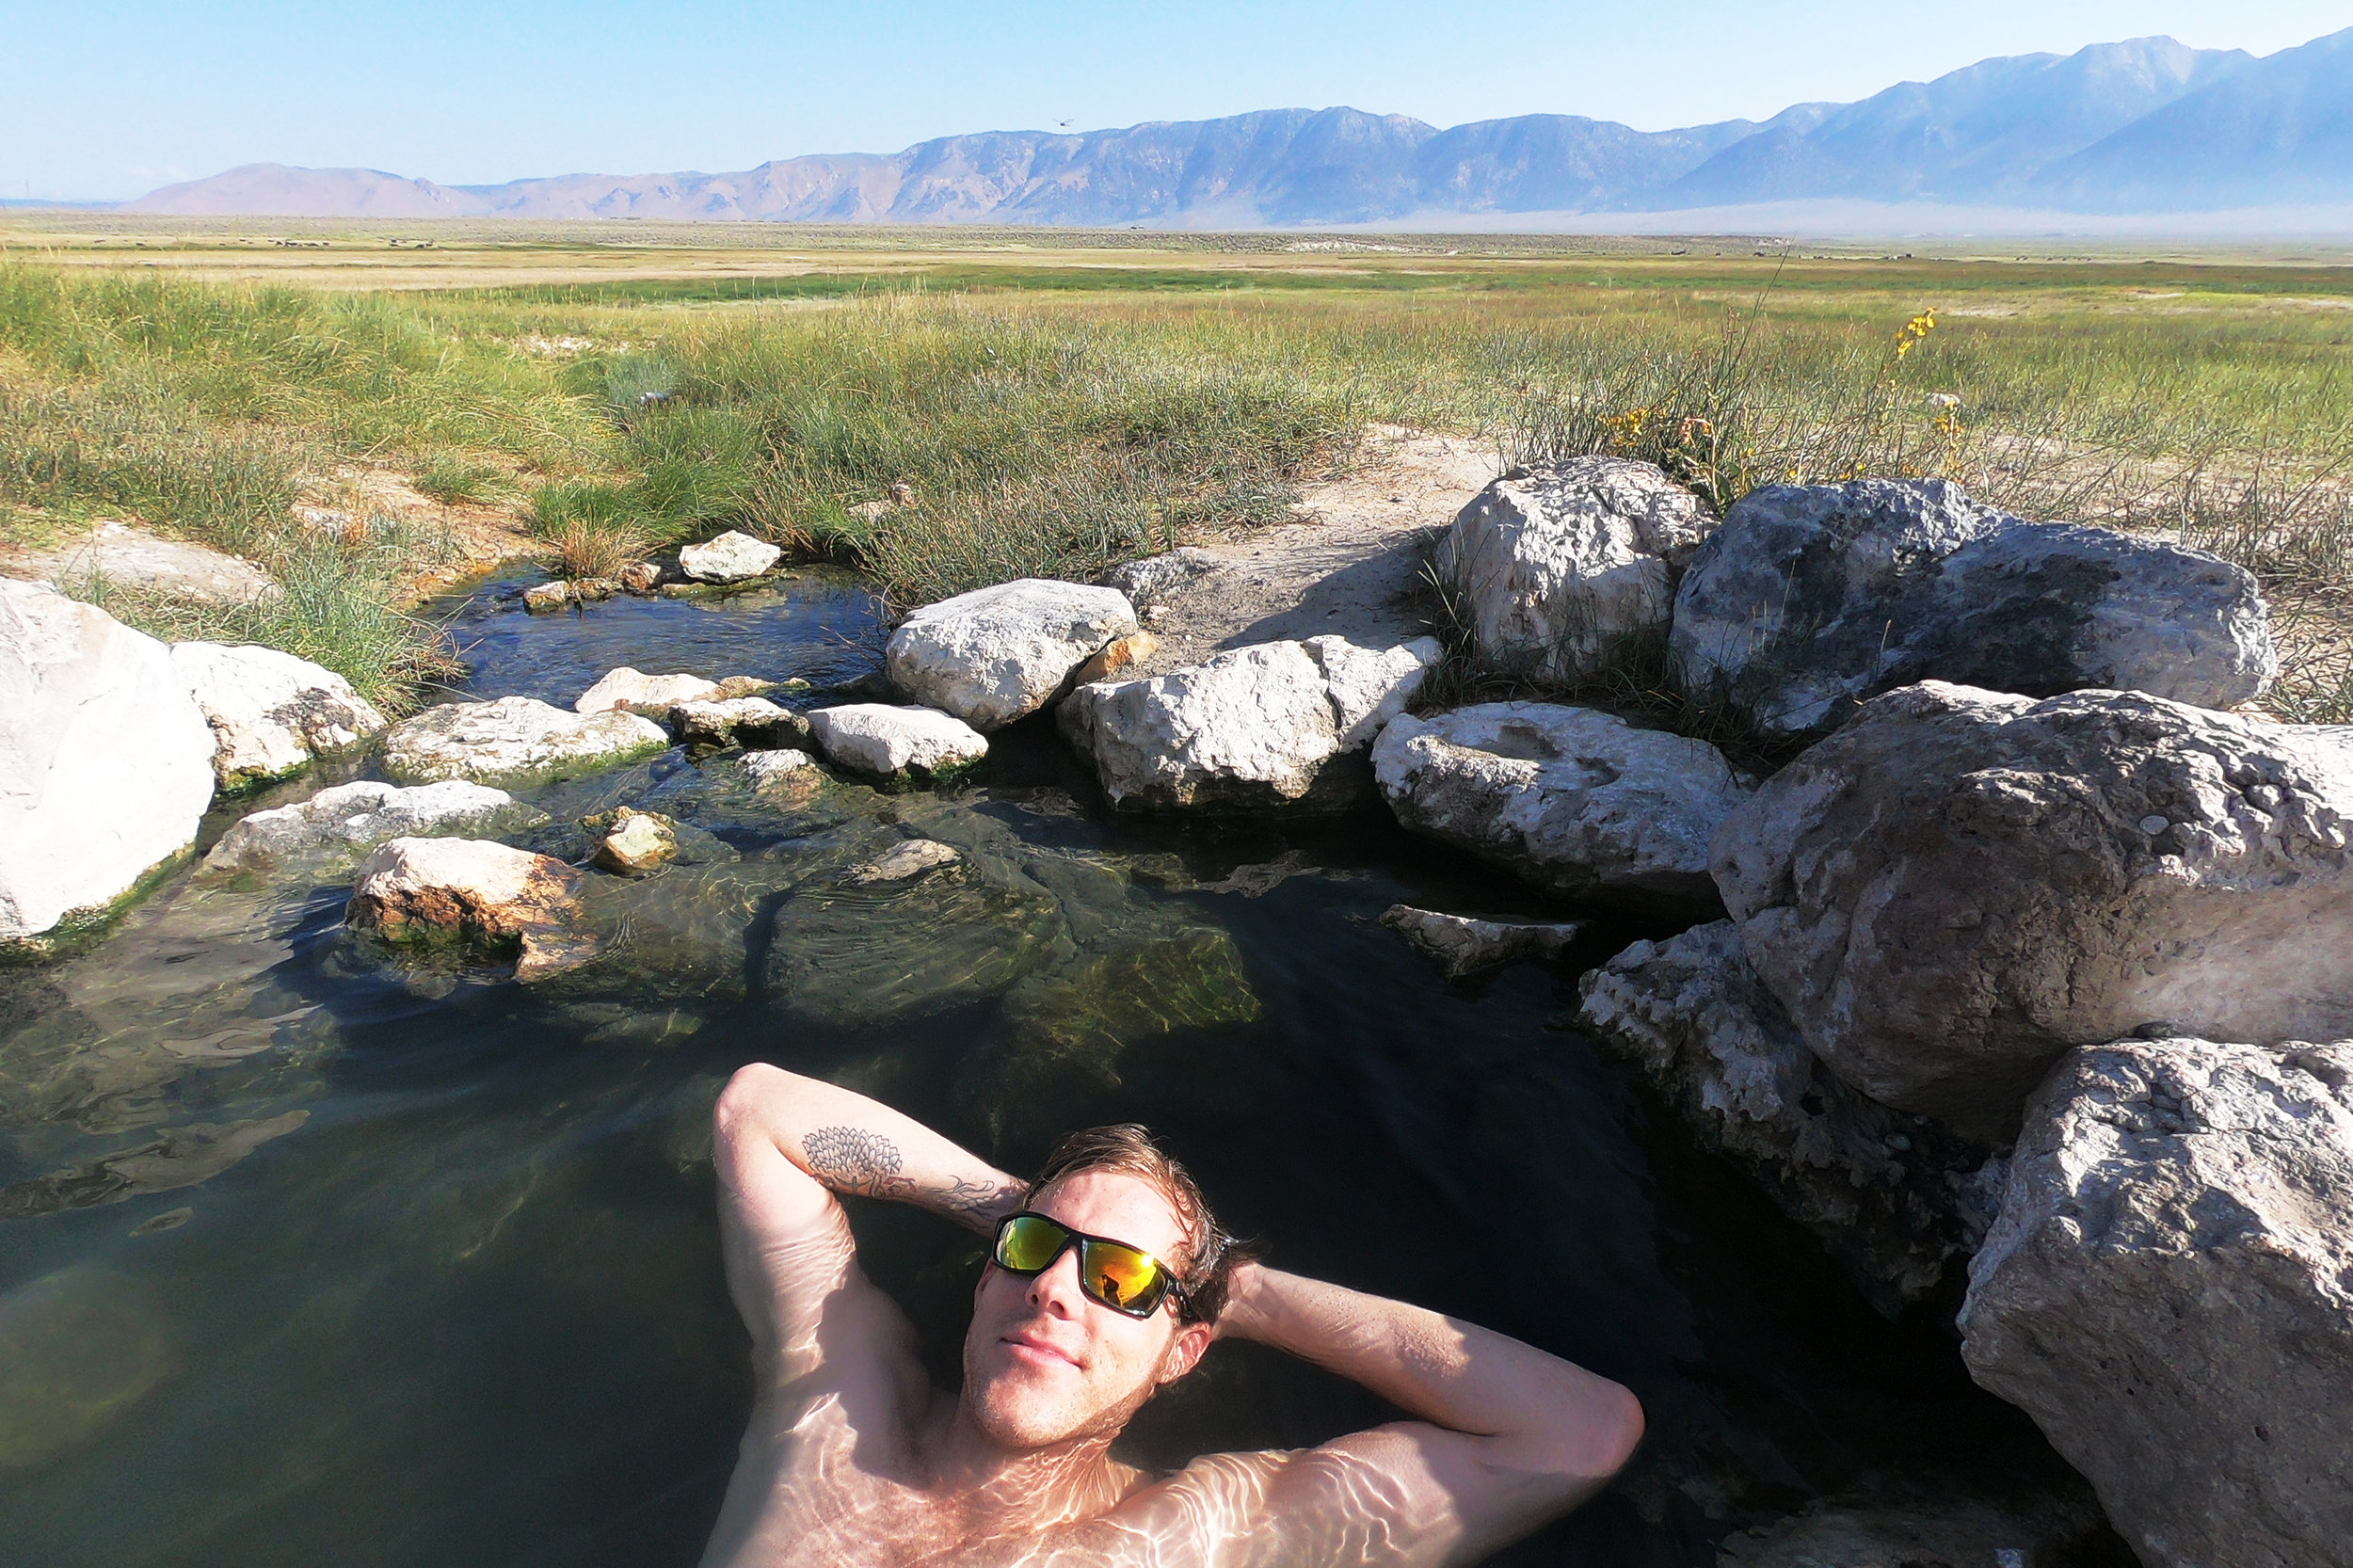 Jon relaxing in the hot springs outside of Mammath Lakes, California.